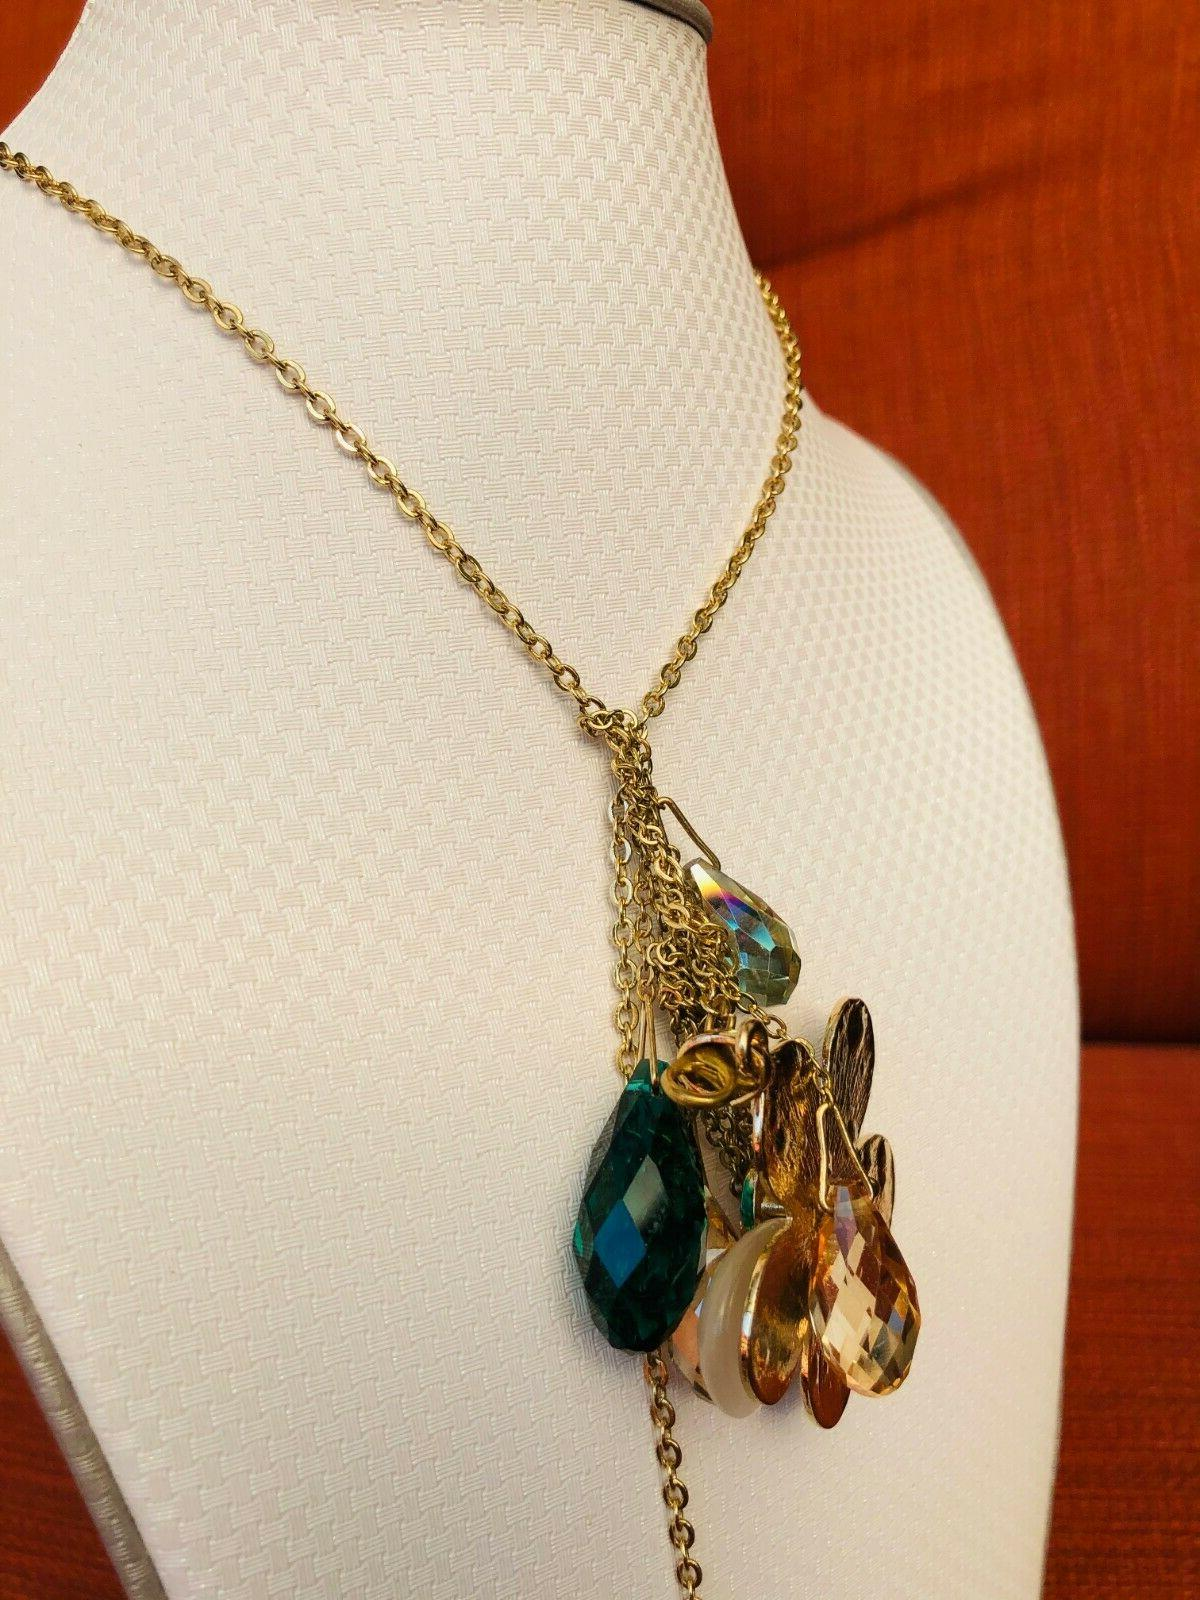 Luxury Euro Necklace Chain Display Bust